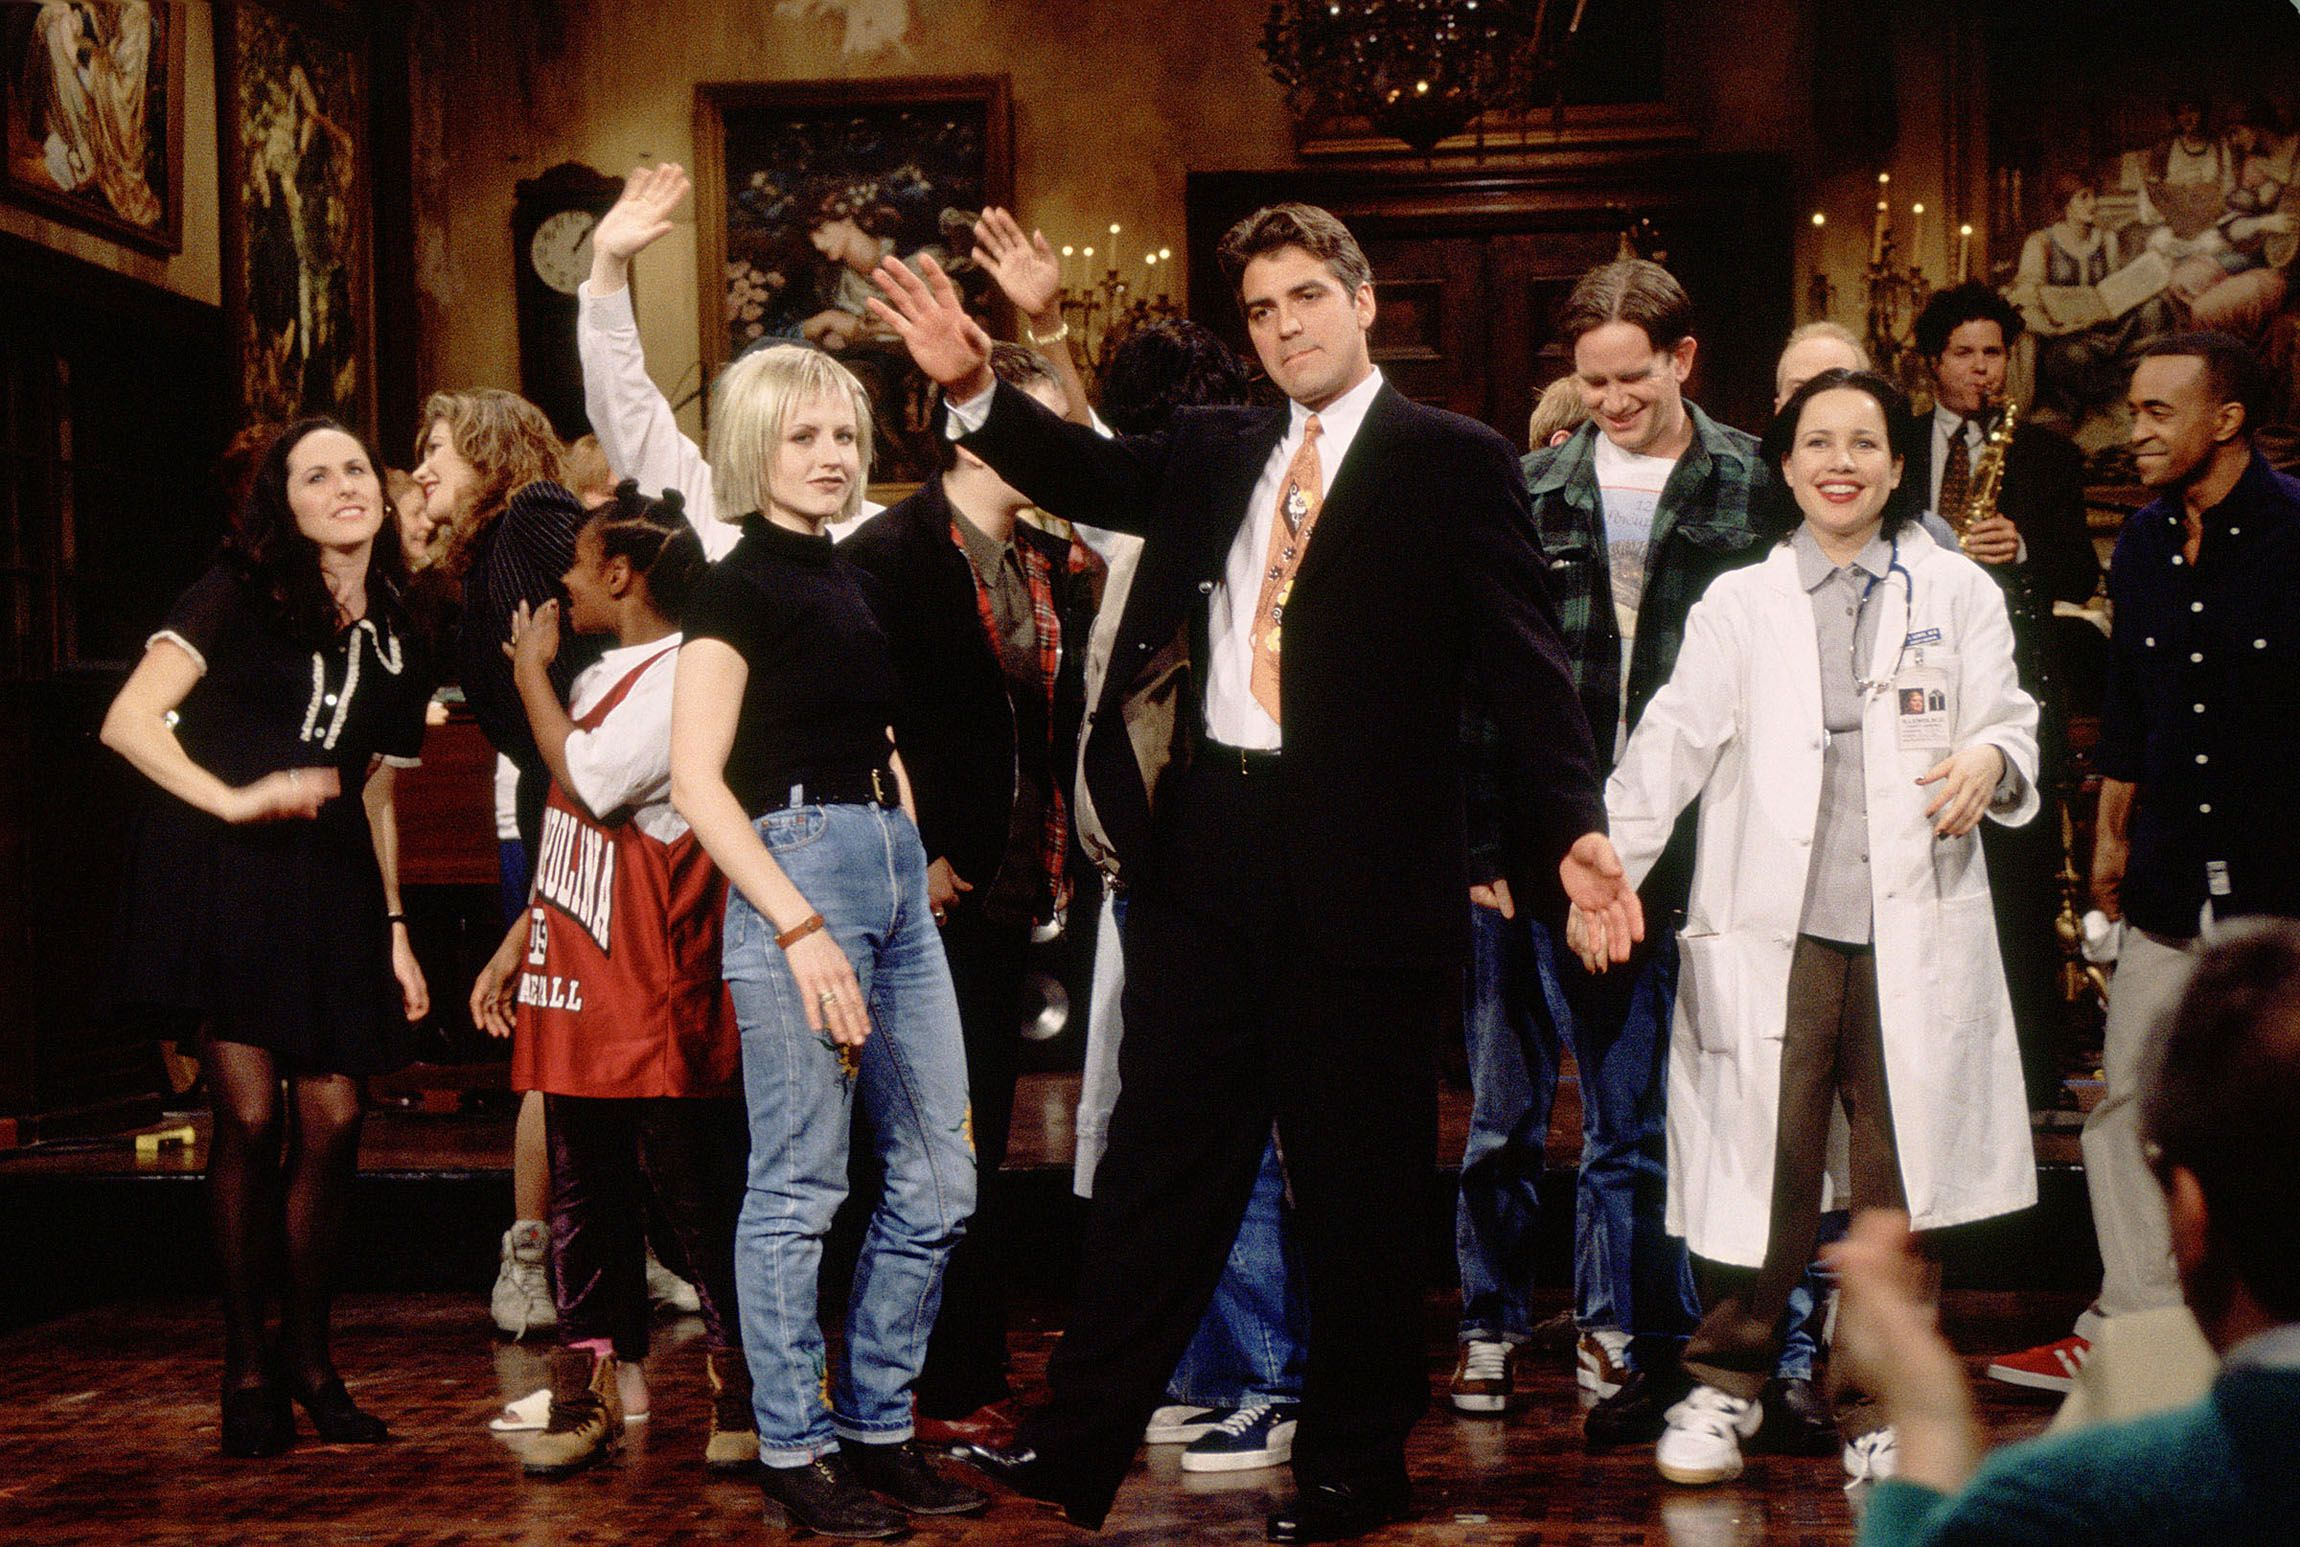 Clooney hosts Saturday Night Live in 1995.